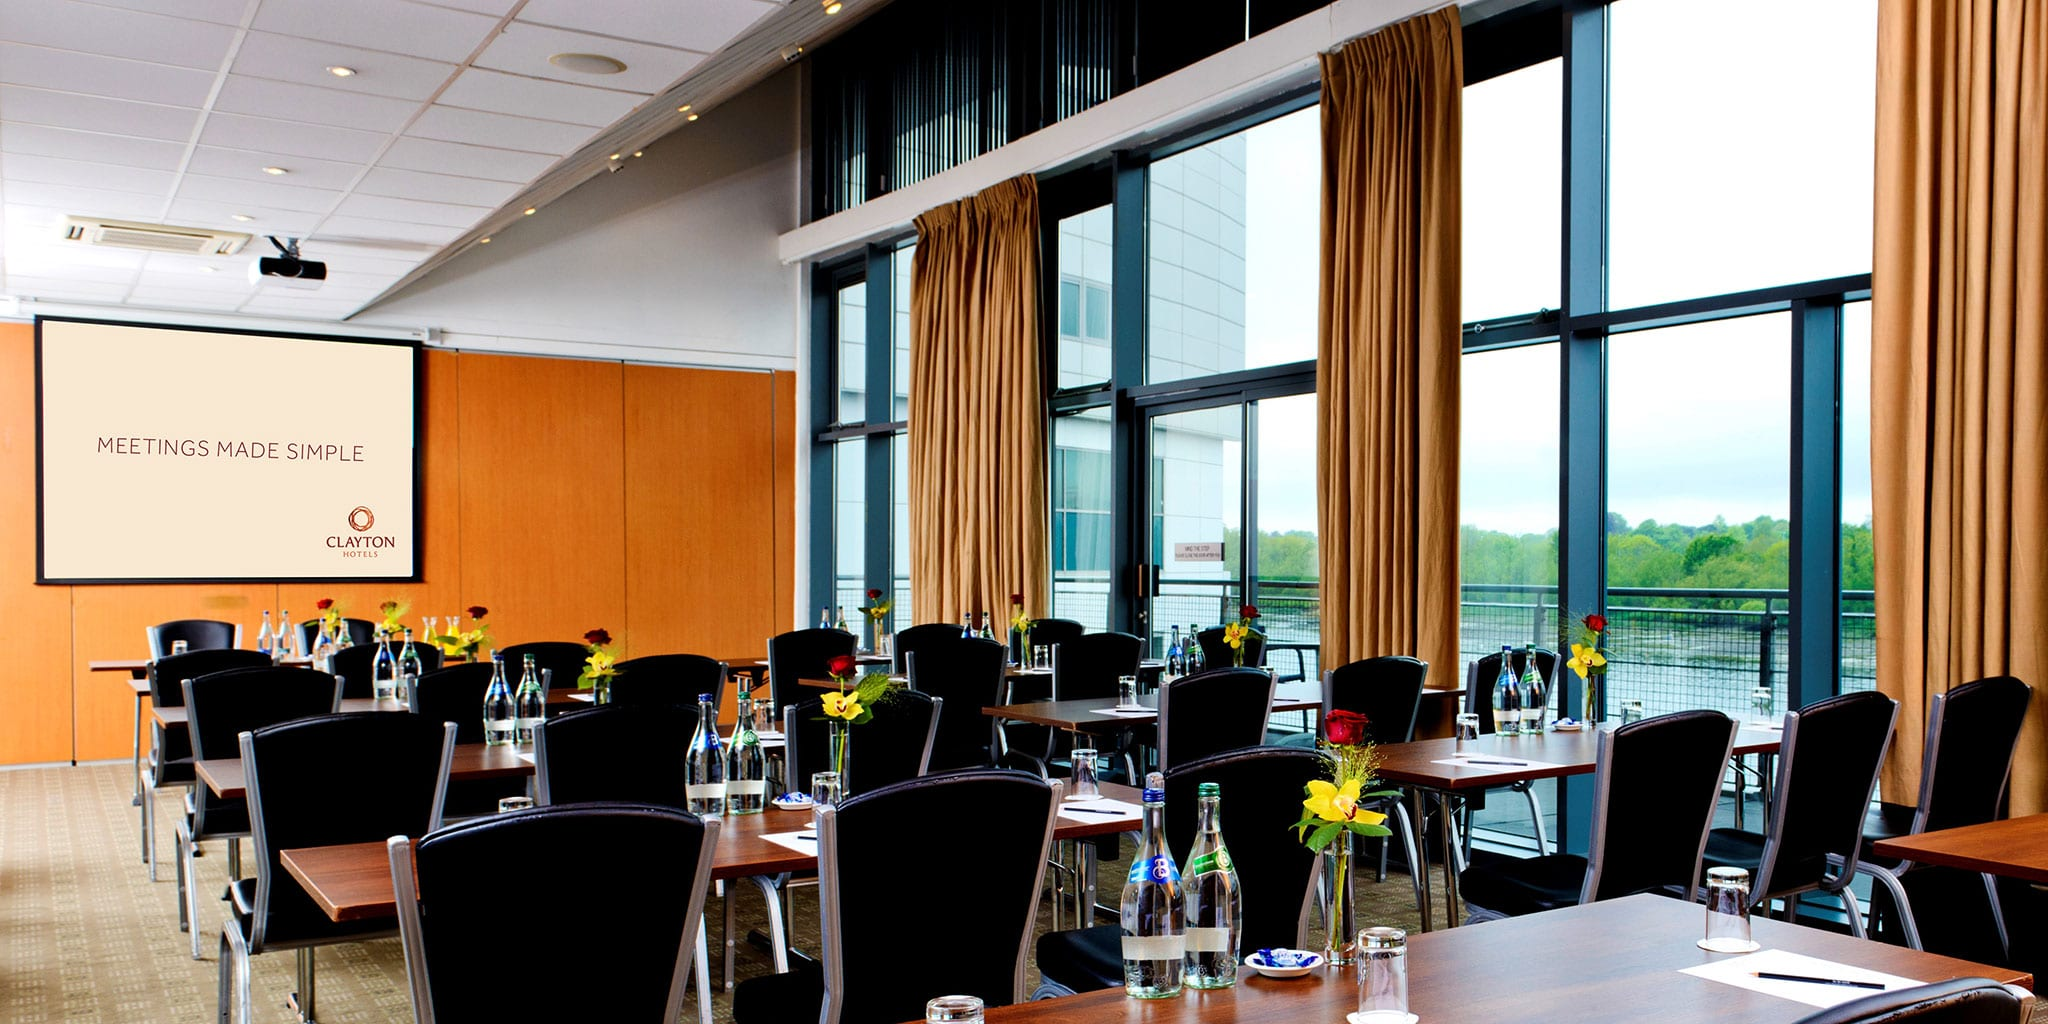 meetings-made-simple-at-Clayton-Hotel-Limerick